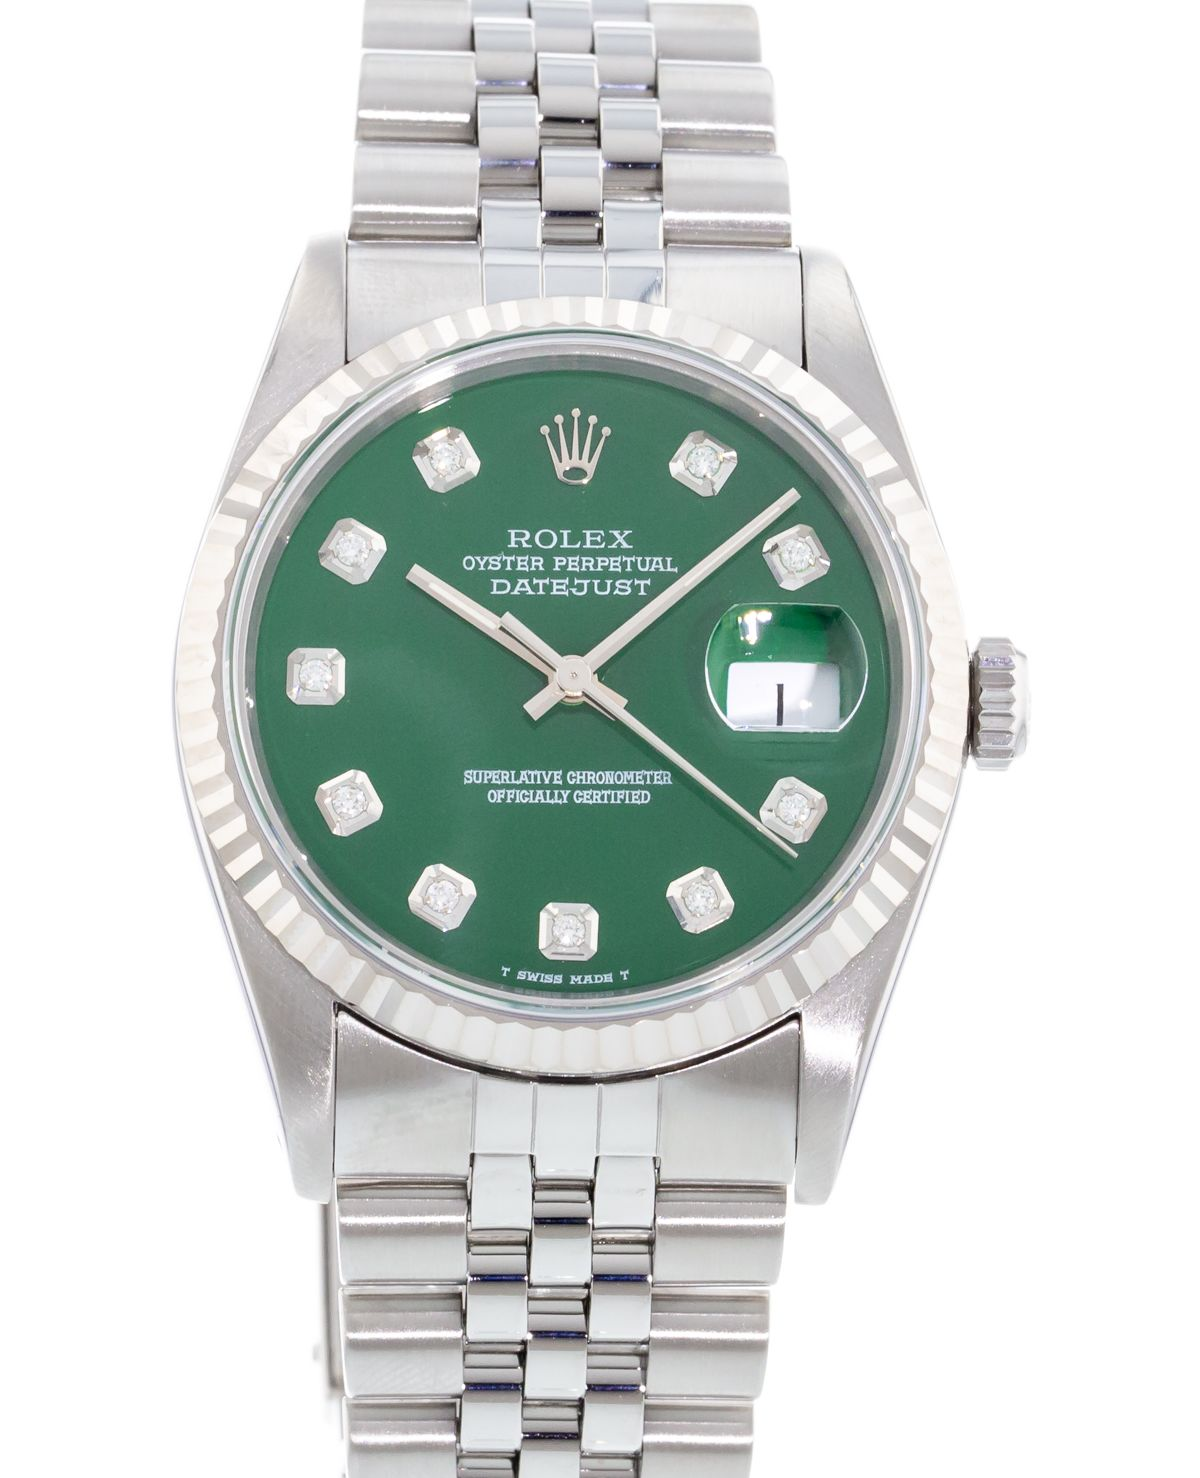 de07dd9c165 Authentic Used Rolex Oyster Perpetual Datejust 16234 Watch (10-10 ...